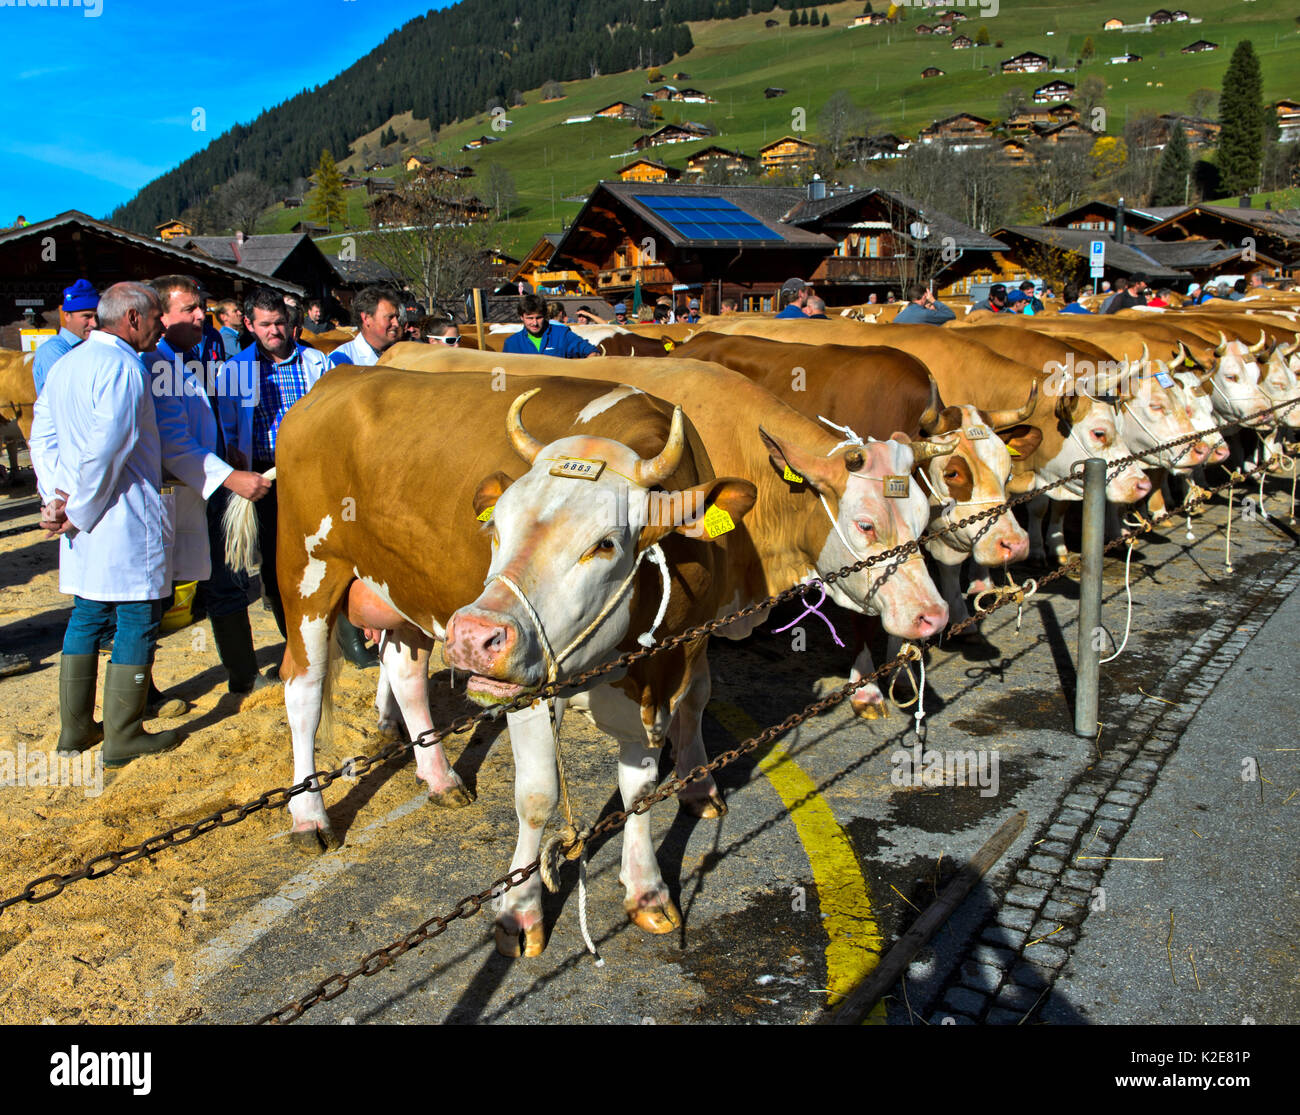 Members of the jury will review Simmental cows at a cattle show, Lauenen, Canton of Berne, Switzerland - Stock Image